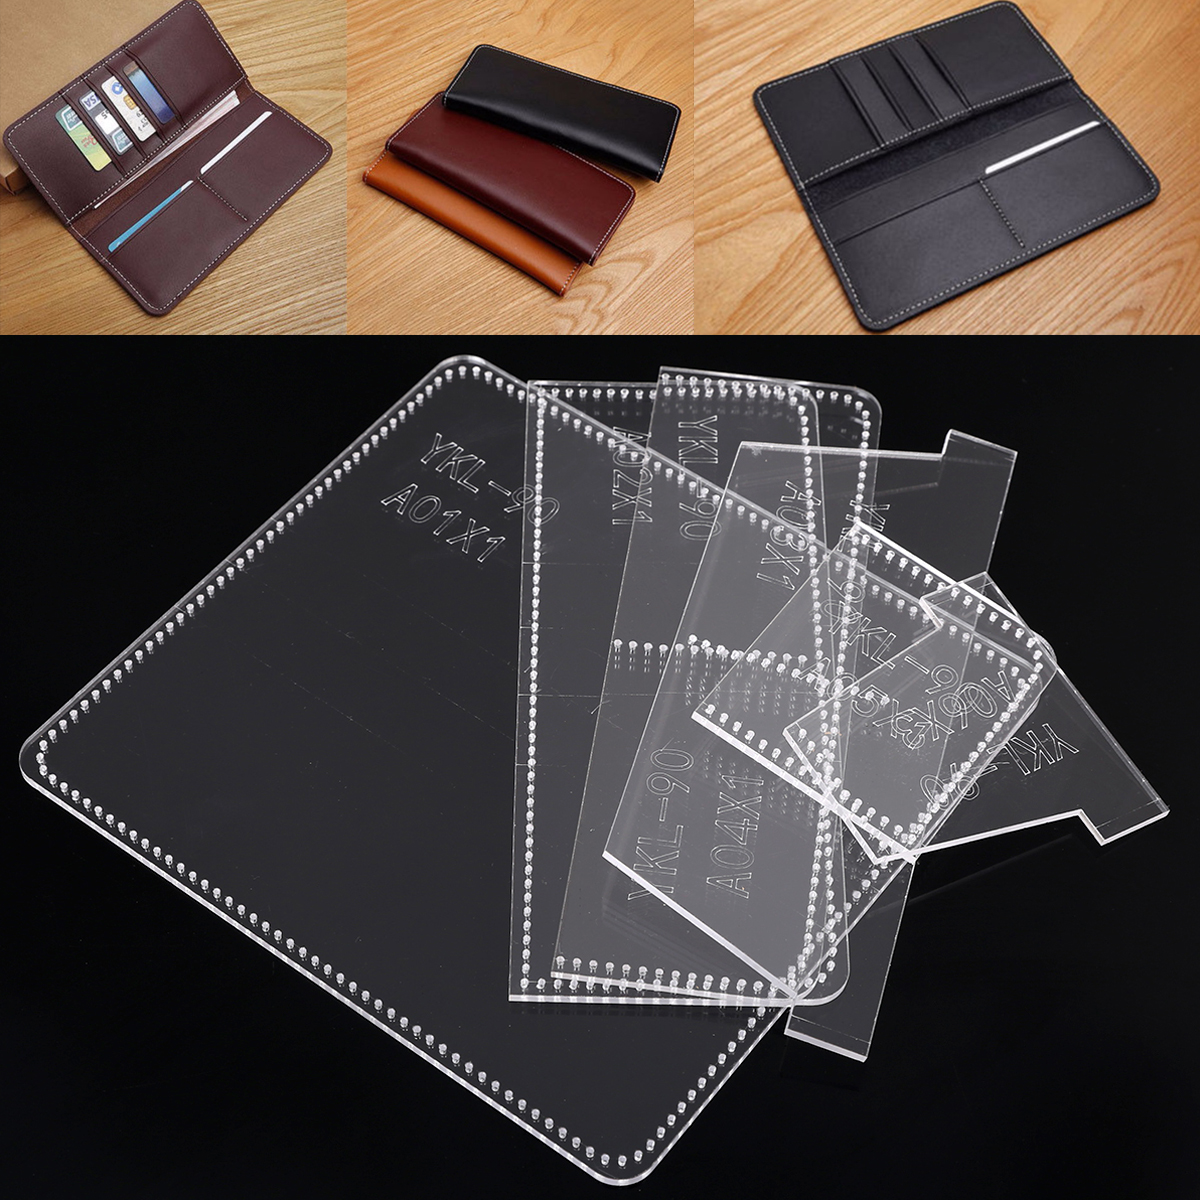 Practical Acrylic Wallet Template Transparent Templates Leather Craft Pattern Stencil for Making Business Long Wallets